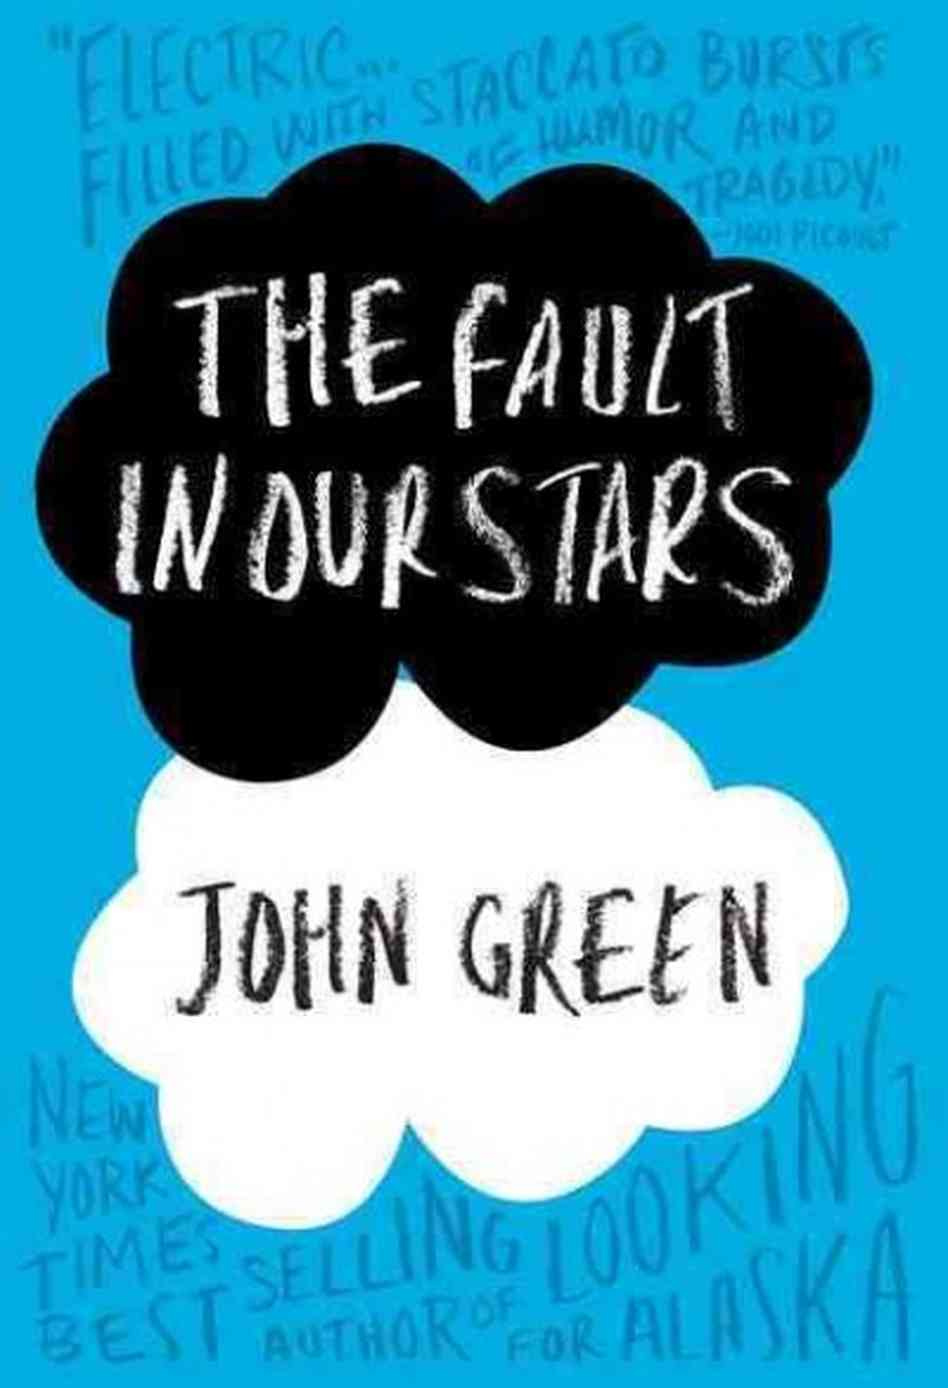 Boekcover The fault in our stars